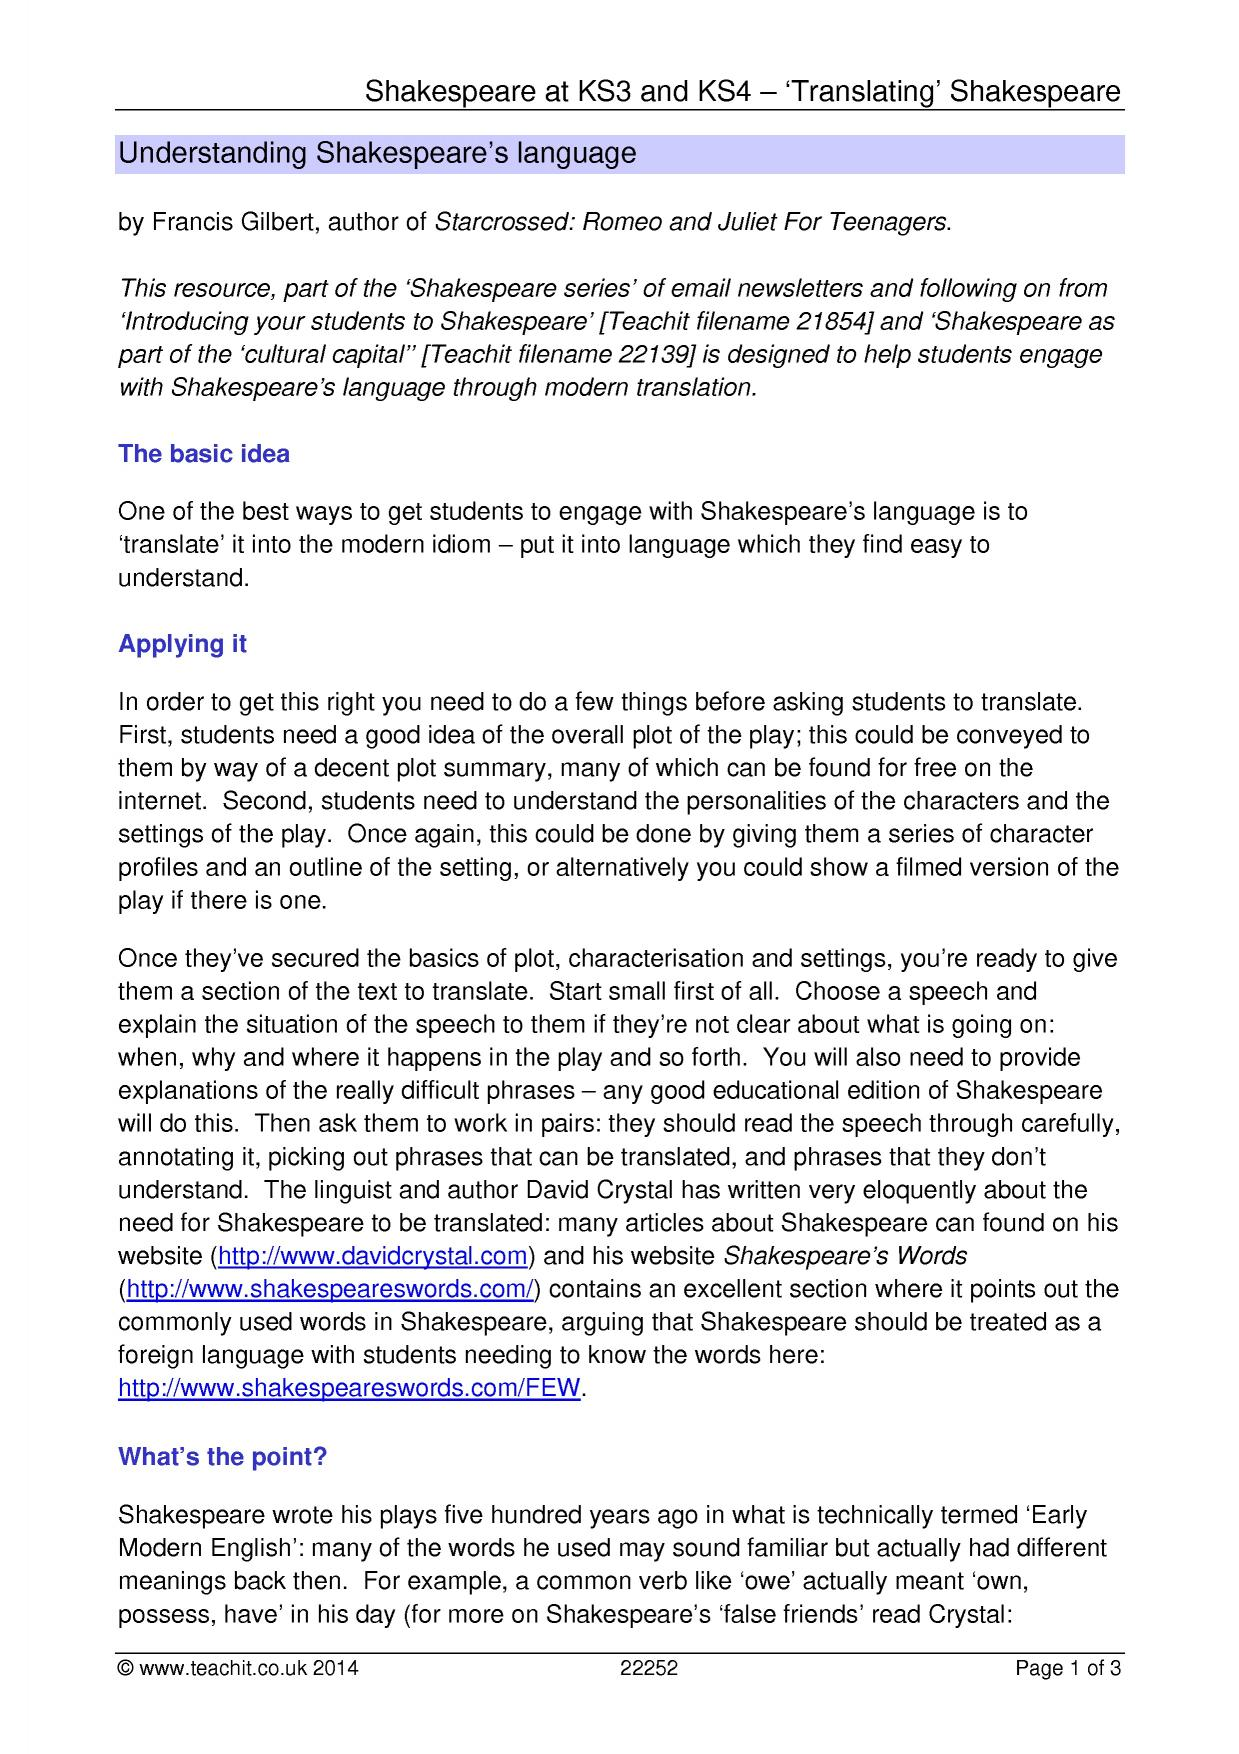 an introduction to the comparison of comedy and tragedy by william shakespeare Introduction to the tragedy of romeo and juliet the tragedy of romeo and juliet , a tragic play by william shakespeare, is the story of two star-crossed lovers who are plagued by the hatred and detestation of their respective families.